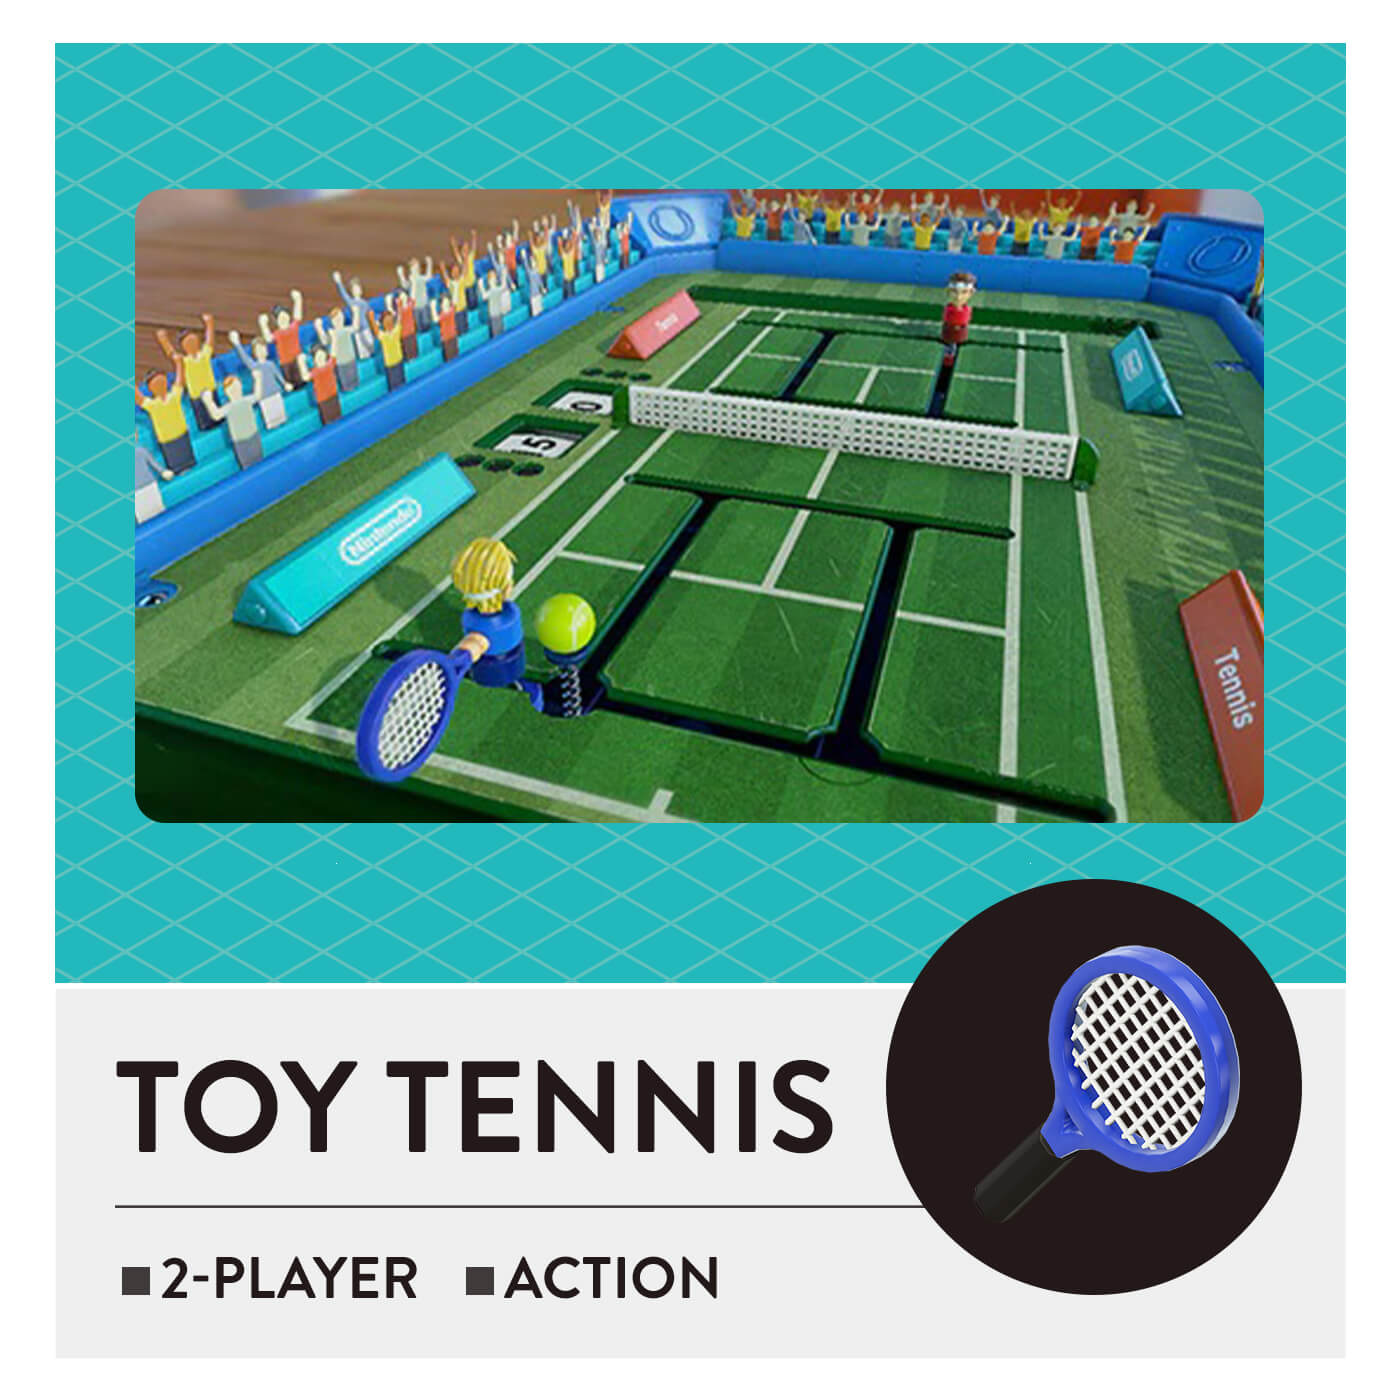 51 Worldwide Games - Toy Tennis